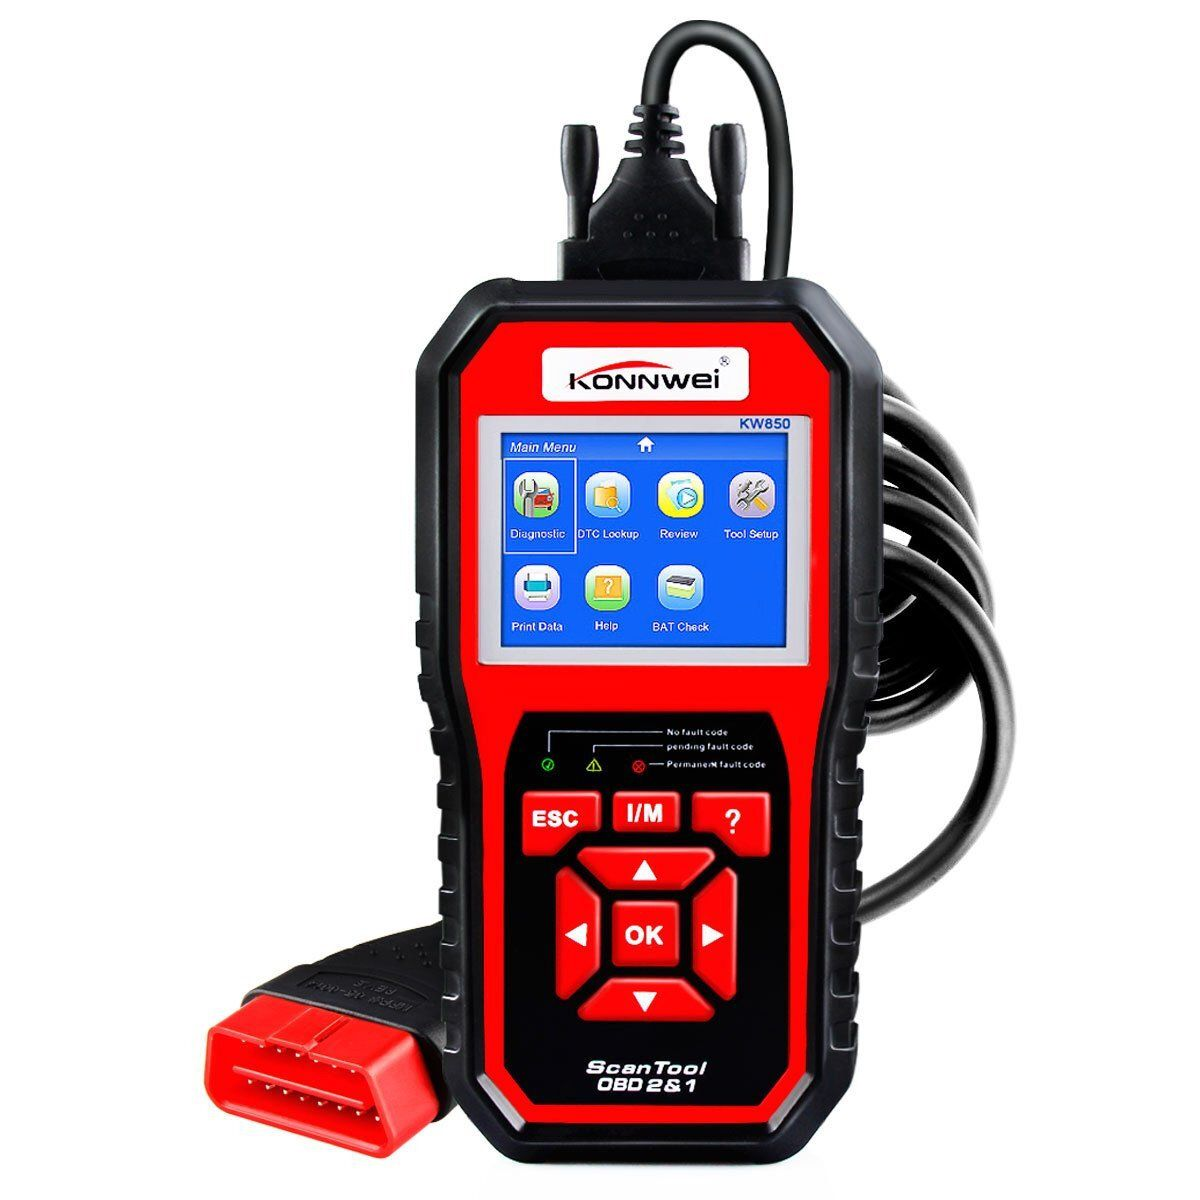 KONNWEI KW850 OBD2 Scanner EOBD Car Scan Diagnostic Tool Engine Fault Code Reader Multi languages